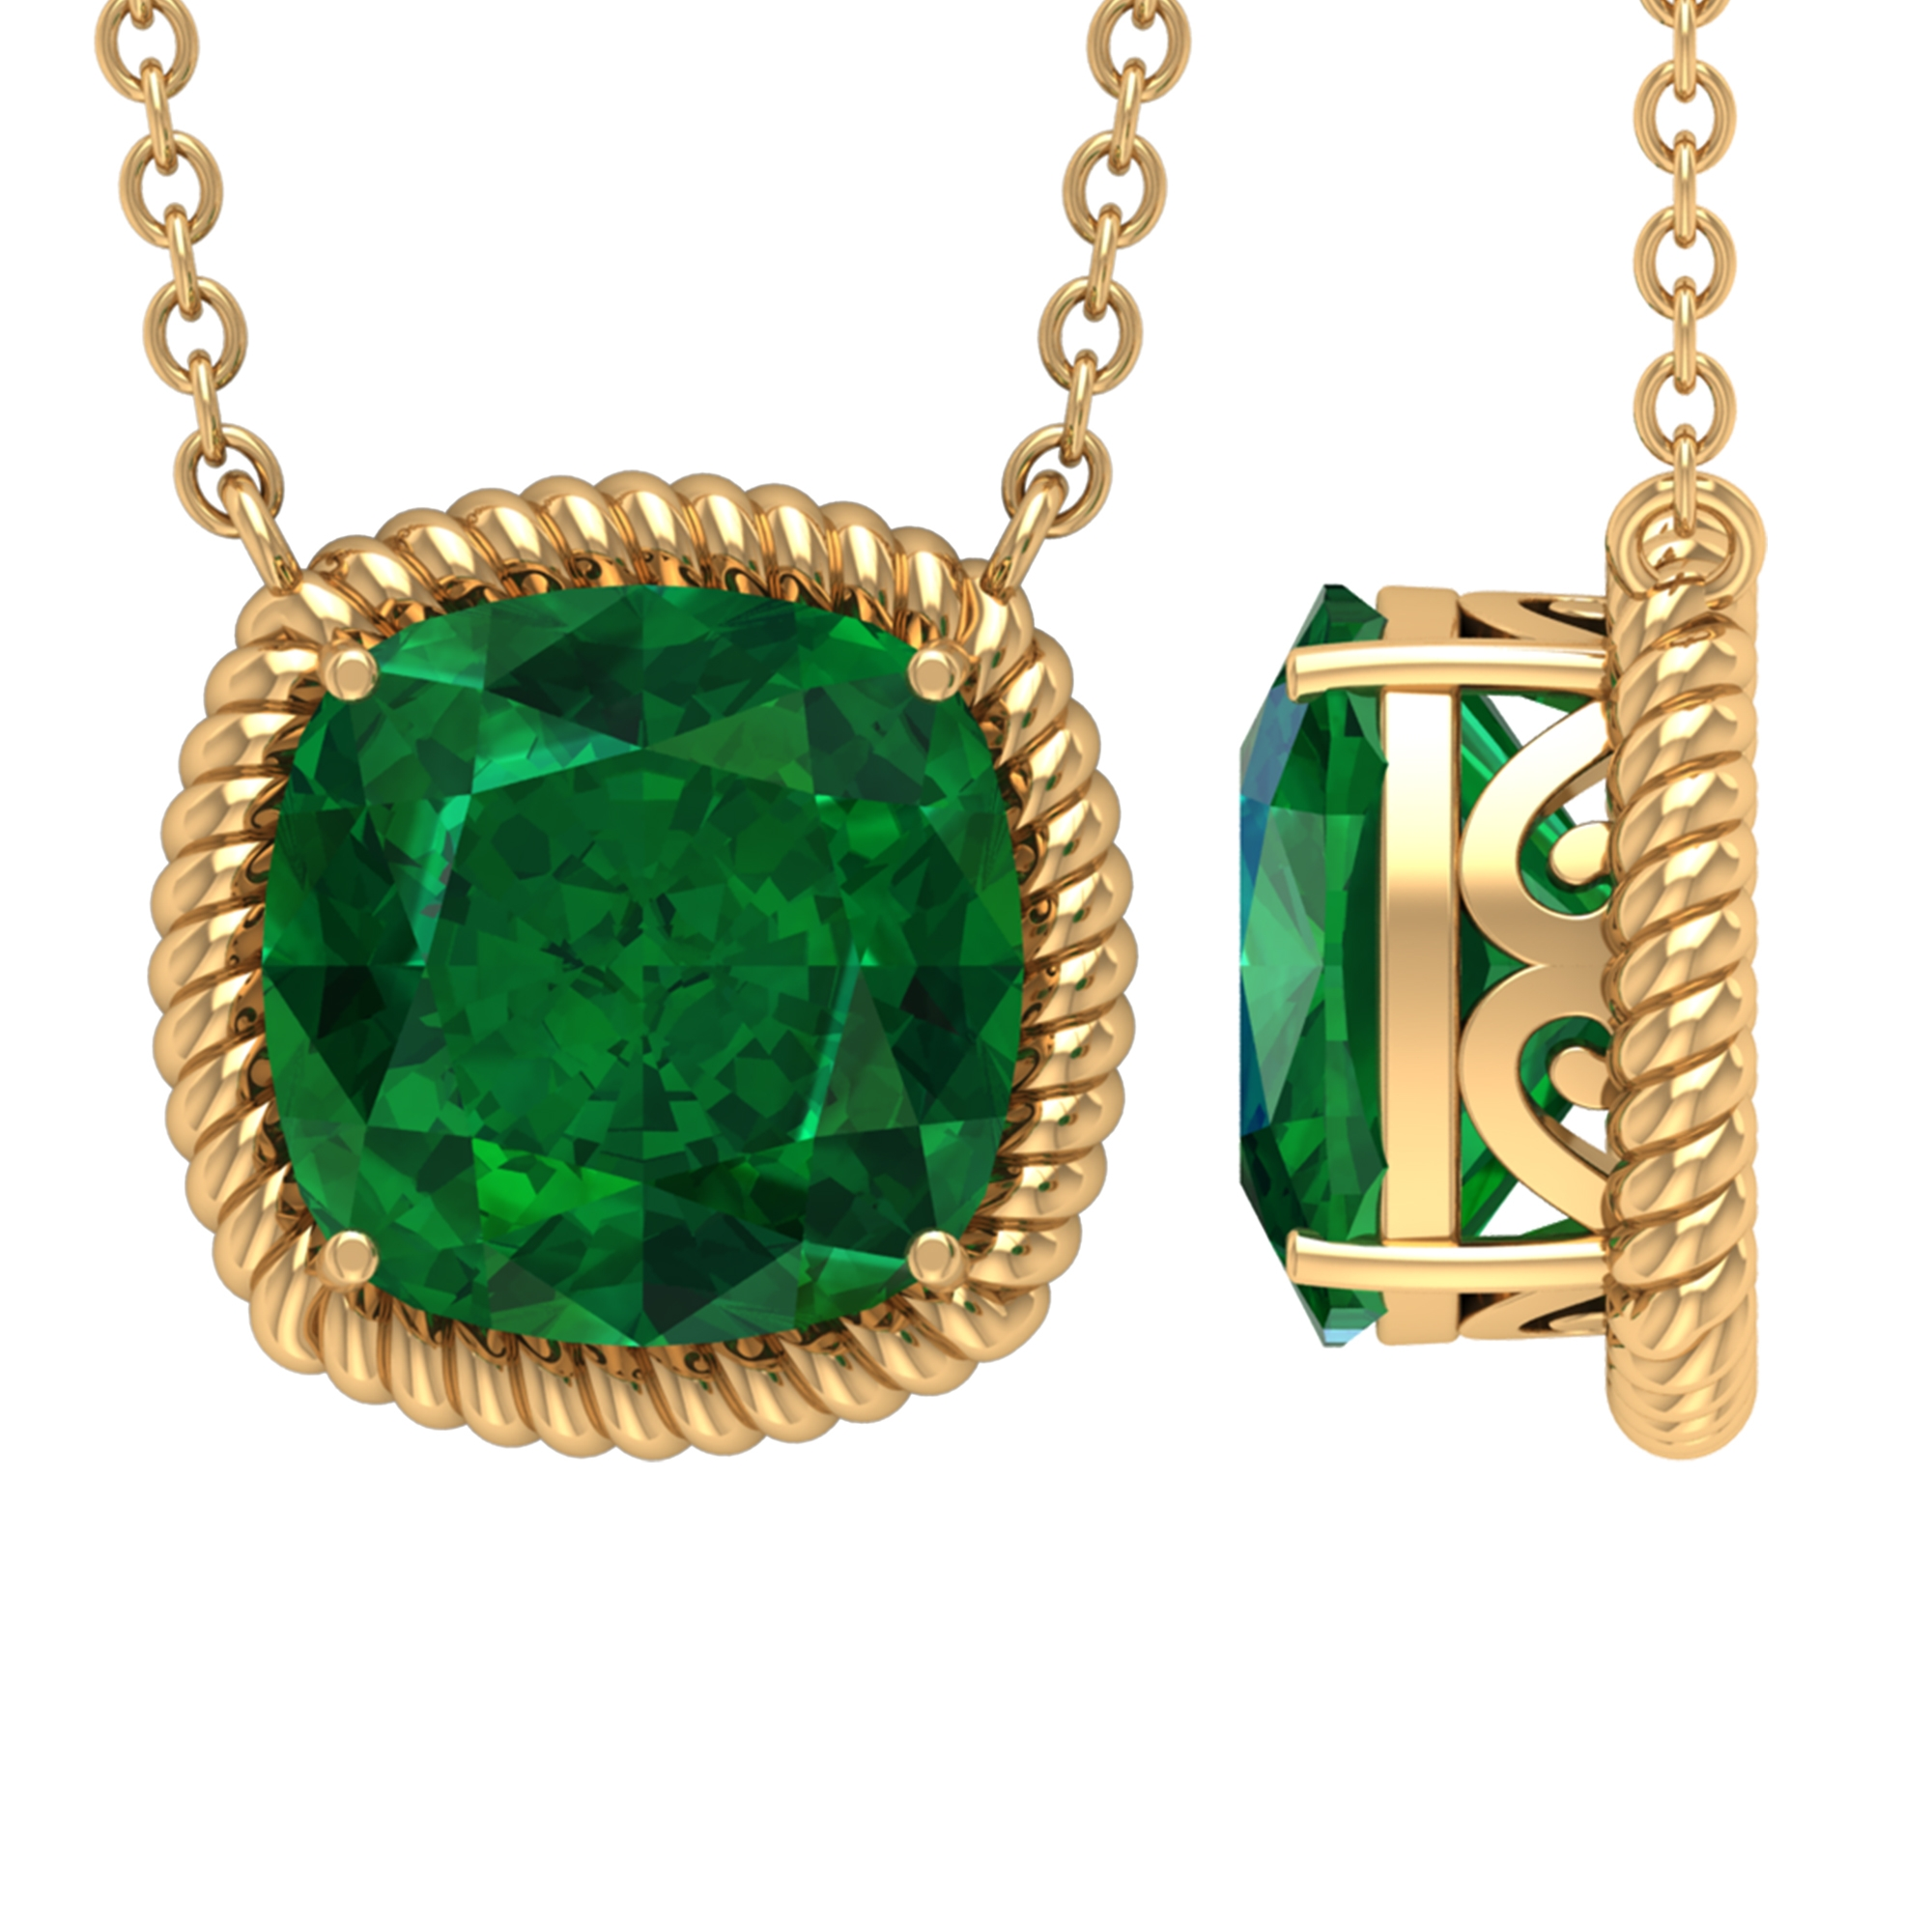 8 MM Cushion Cut Emerald Solitaire Pendant in 4 Prong Setting in Rope Frame